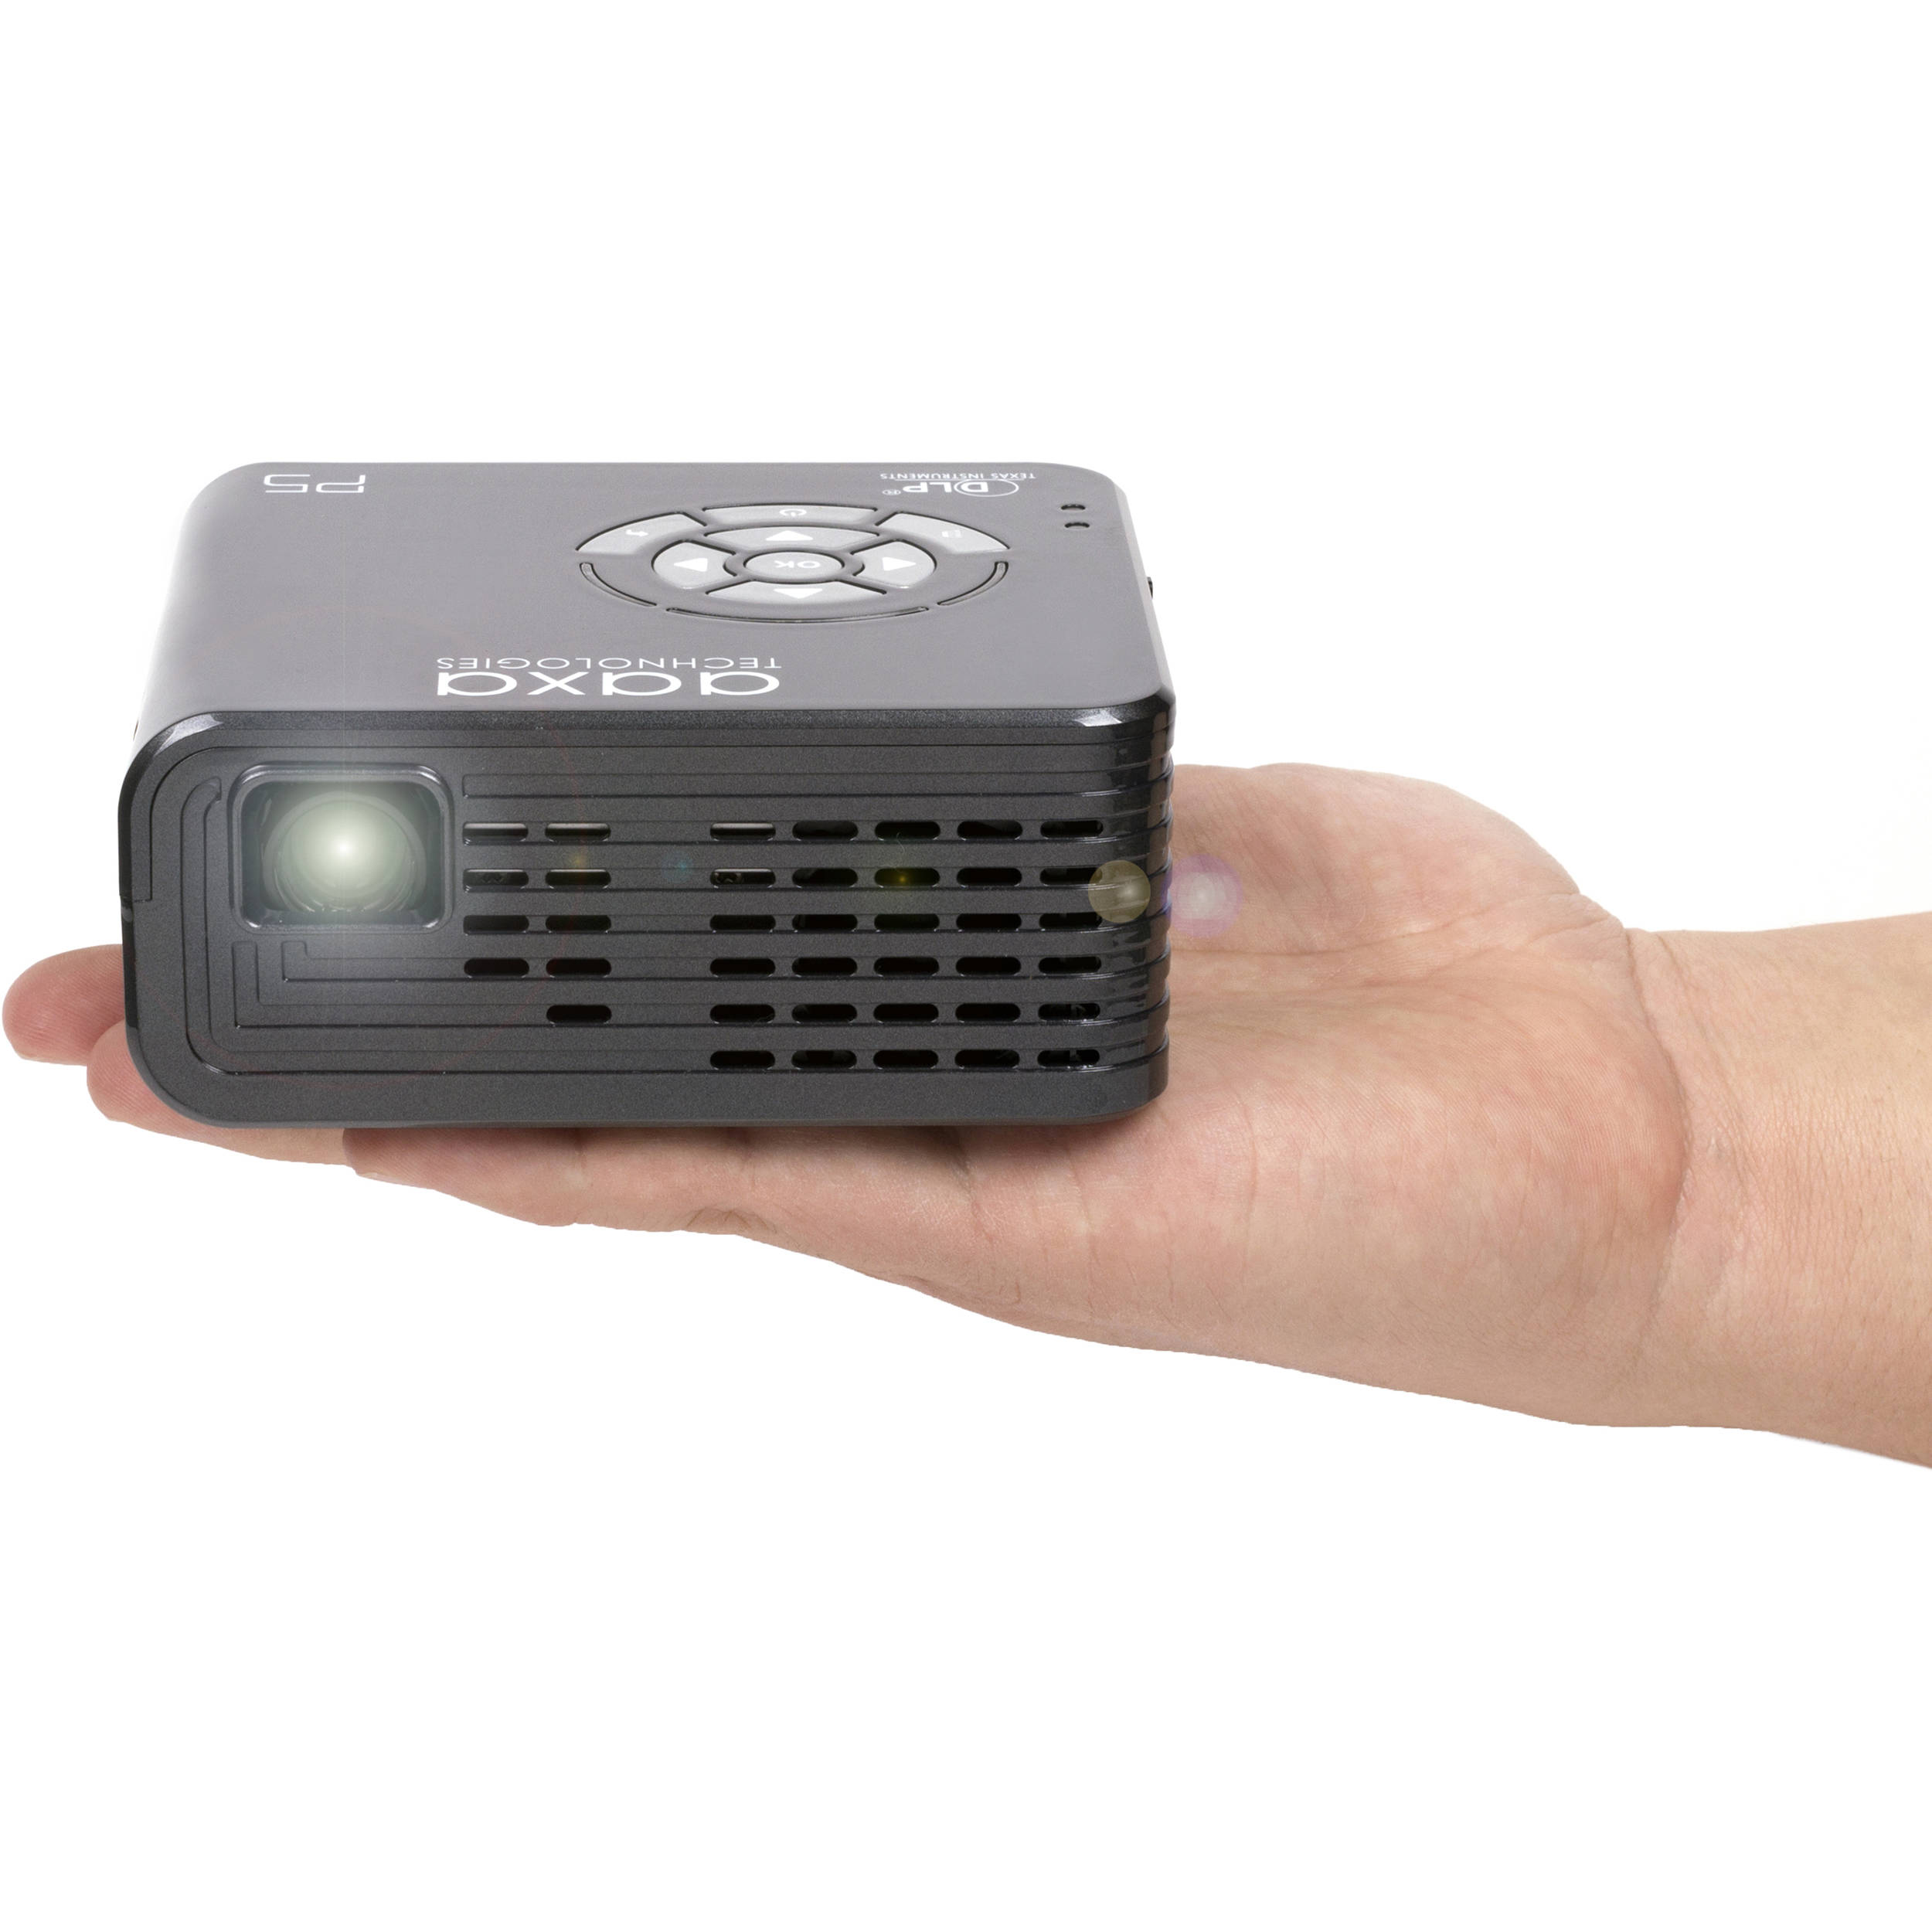 Aaxa technologies p5 300 lumen hd pico projector kp 800 01 b h for Used pocket projector